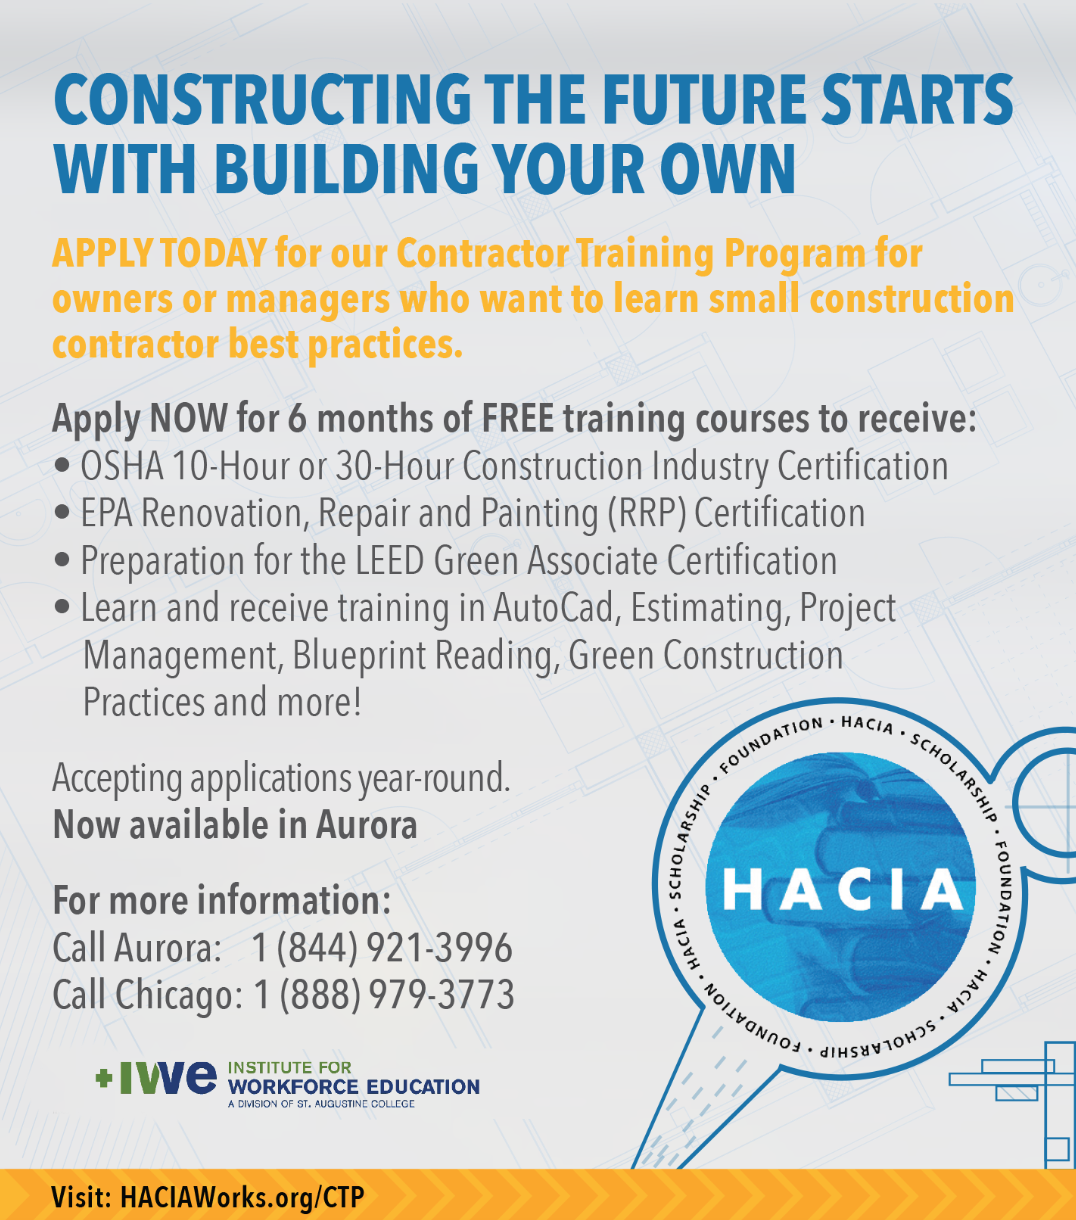 Hacia Haciasef Contractor Training Program